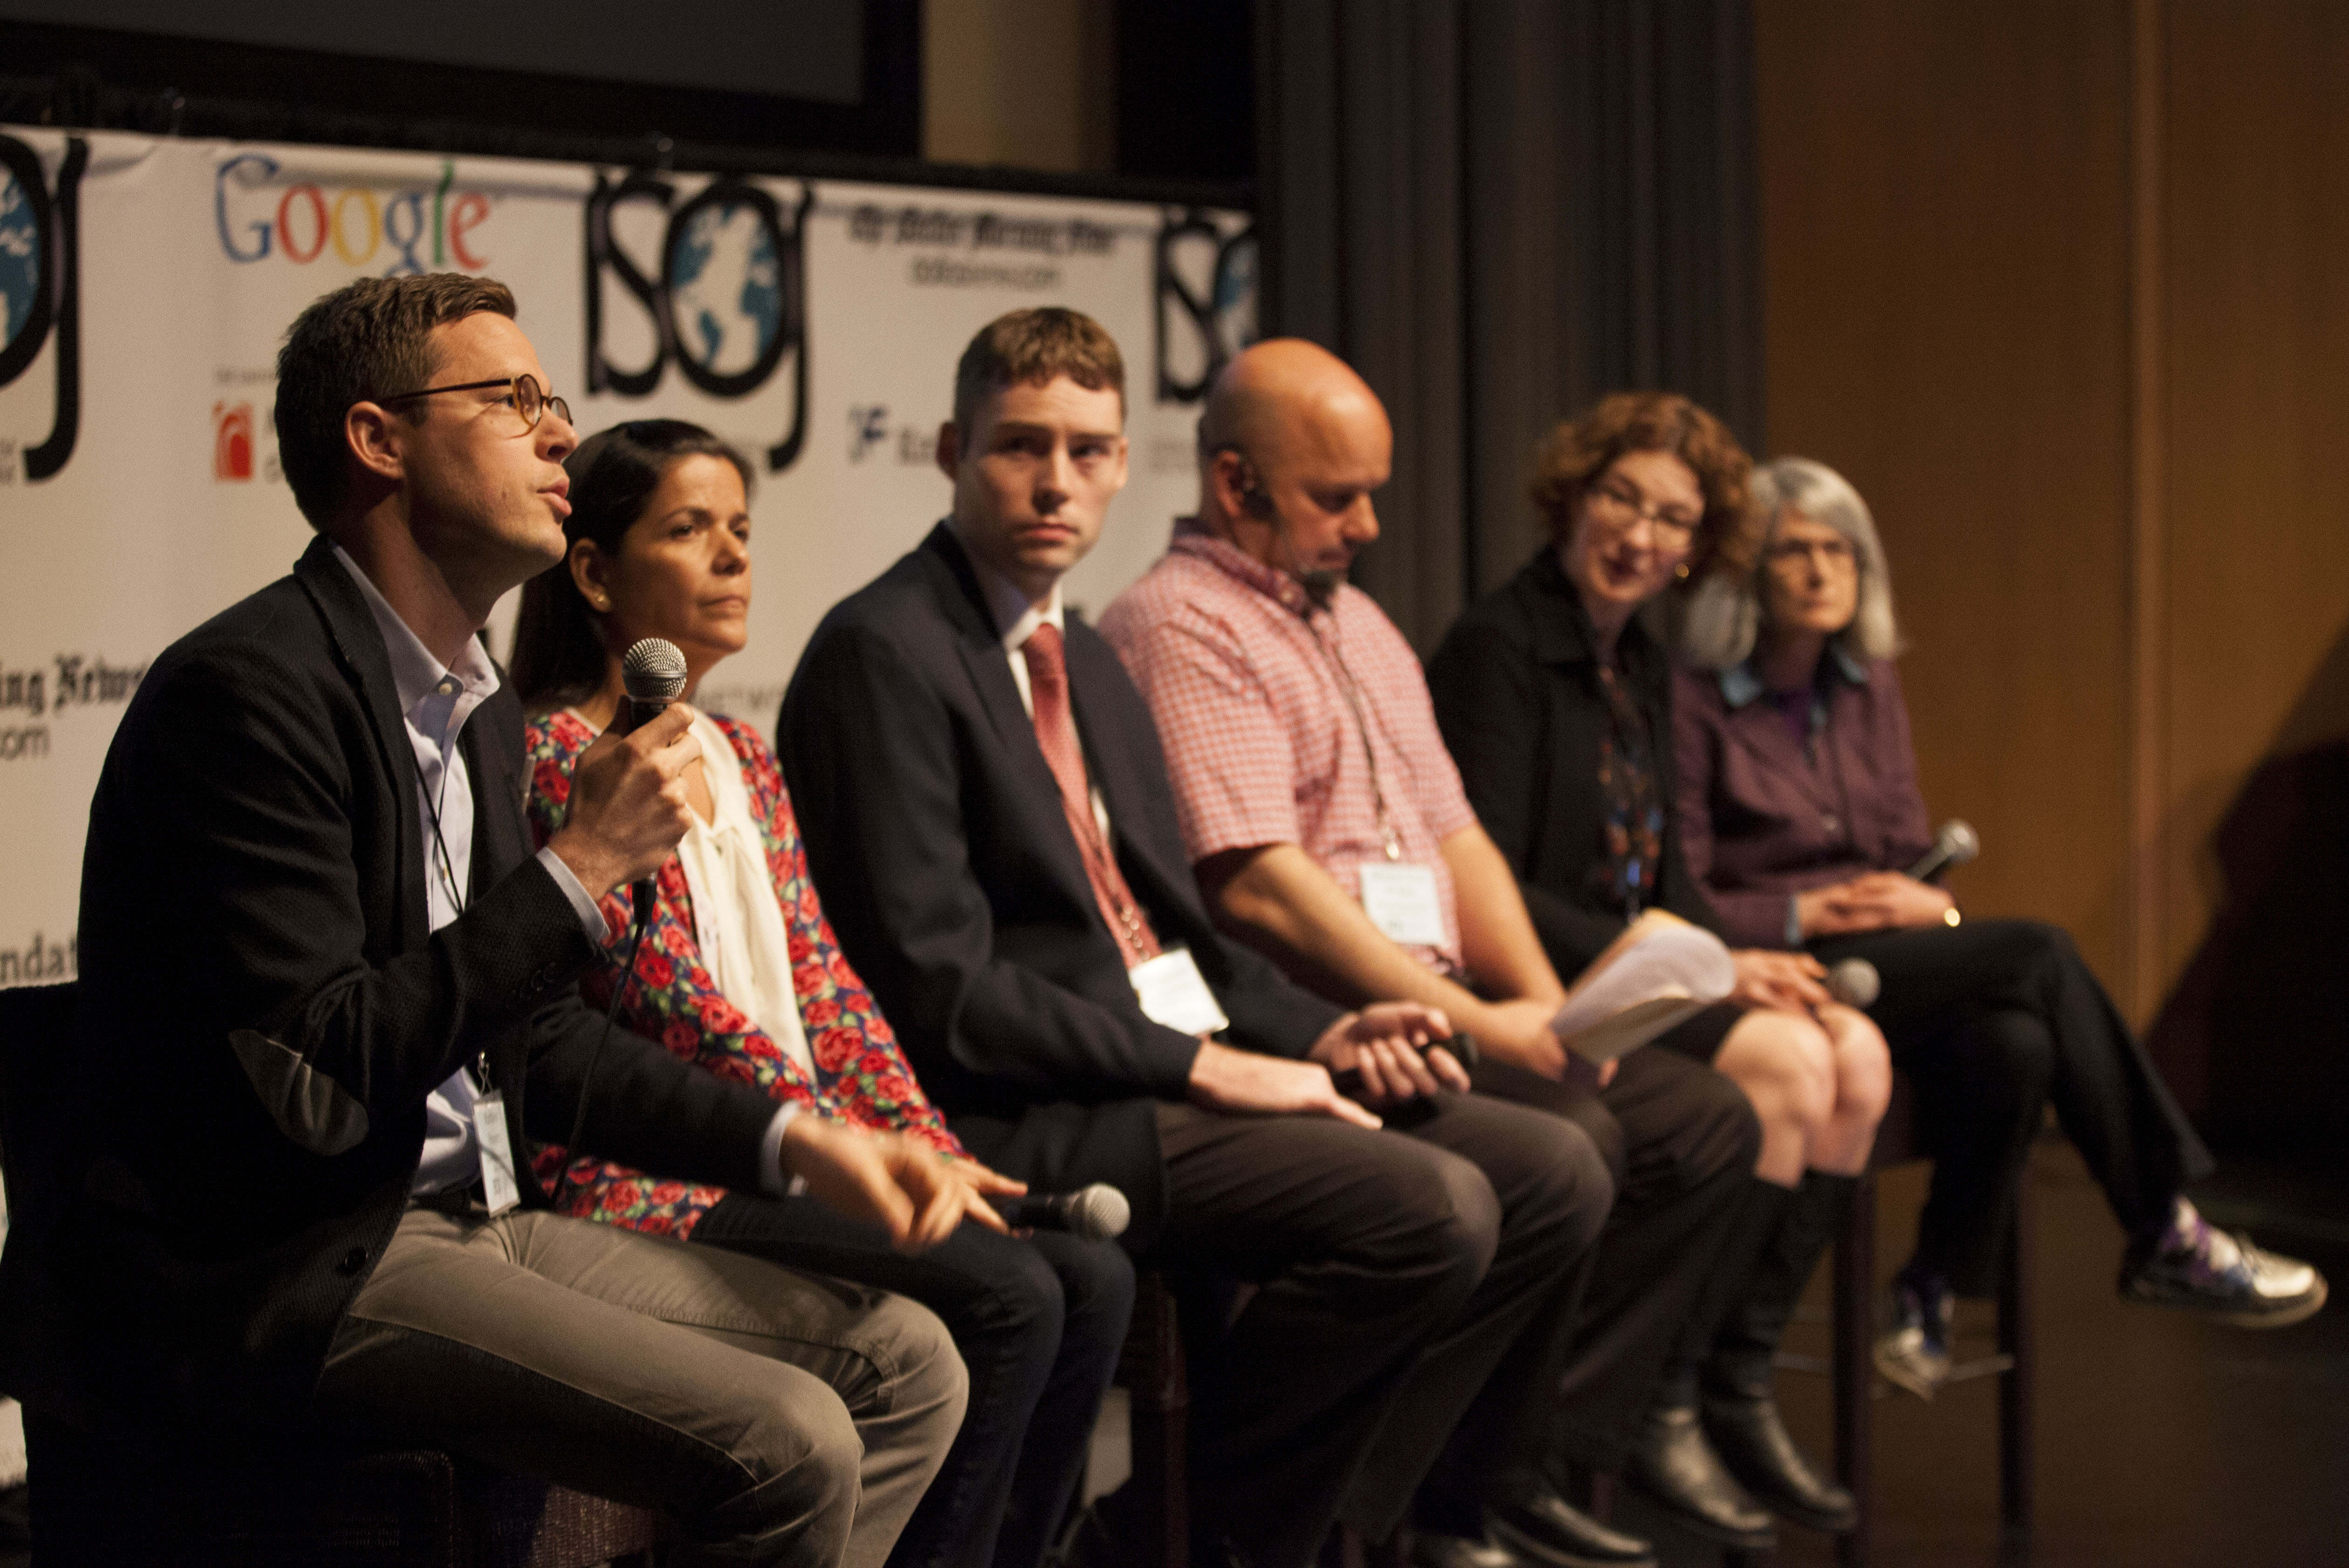 Powers, Barsotti, Molyneux, Kian, Lynch, and Singer. 2014 ISOJ. Emerging Journalistic Practices in the Digital Age.